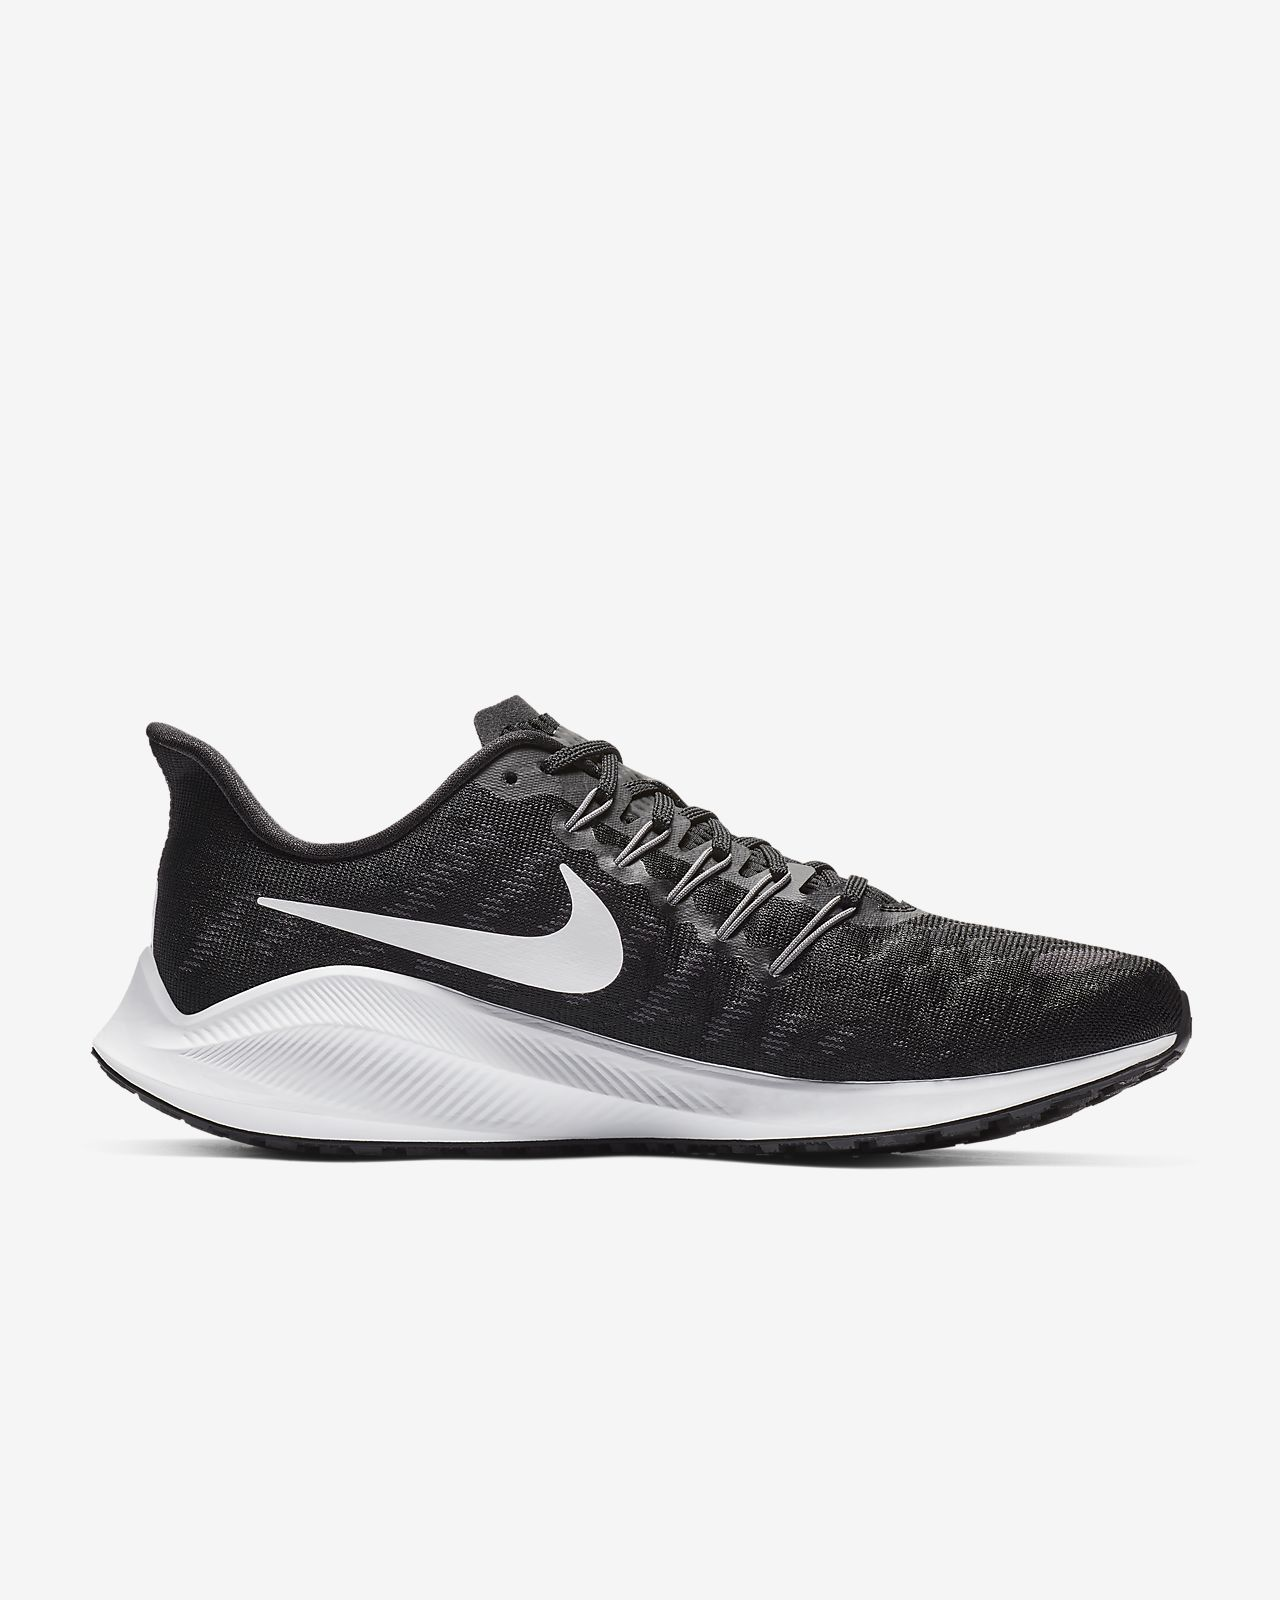 low priced 3340a 6c696 Nike Air Zoom Vomero 14 Men's Running Shoe